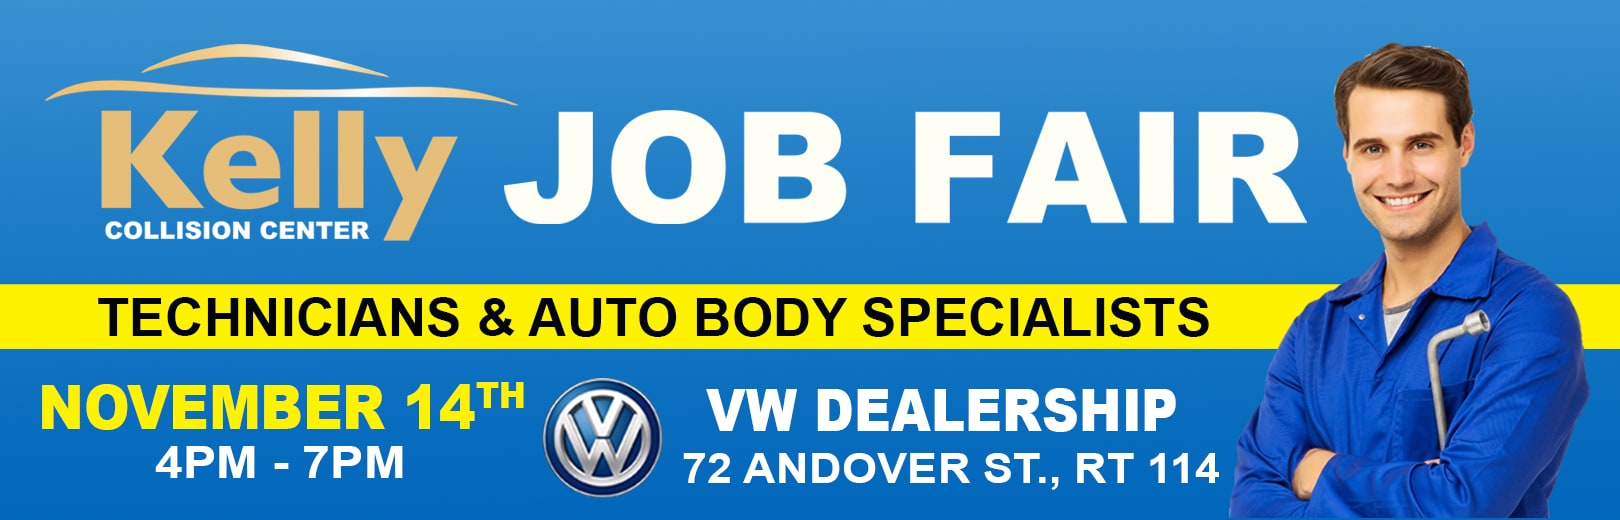 Kelly Collision Center - Job Fair | Now Hiring!